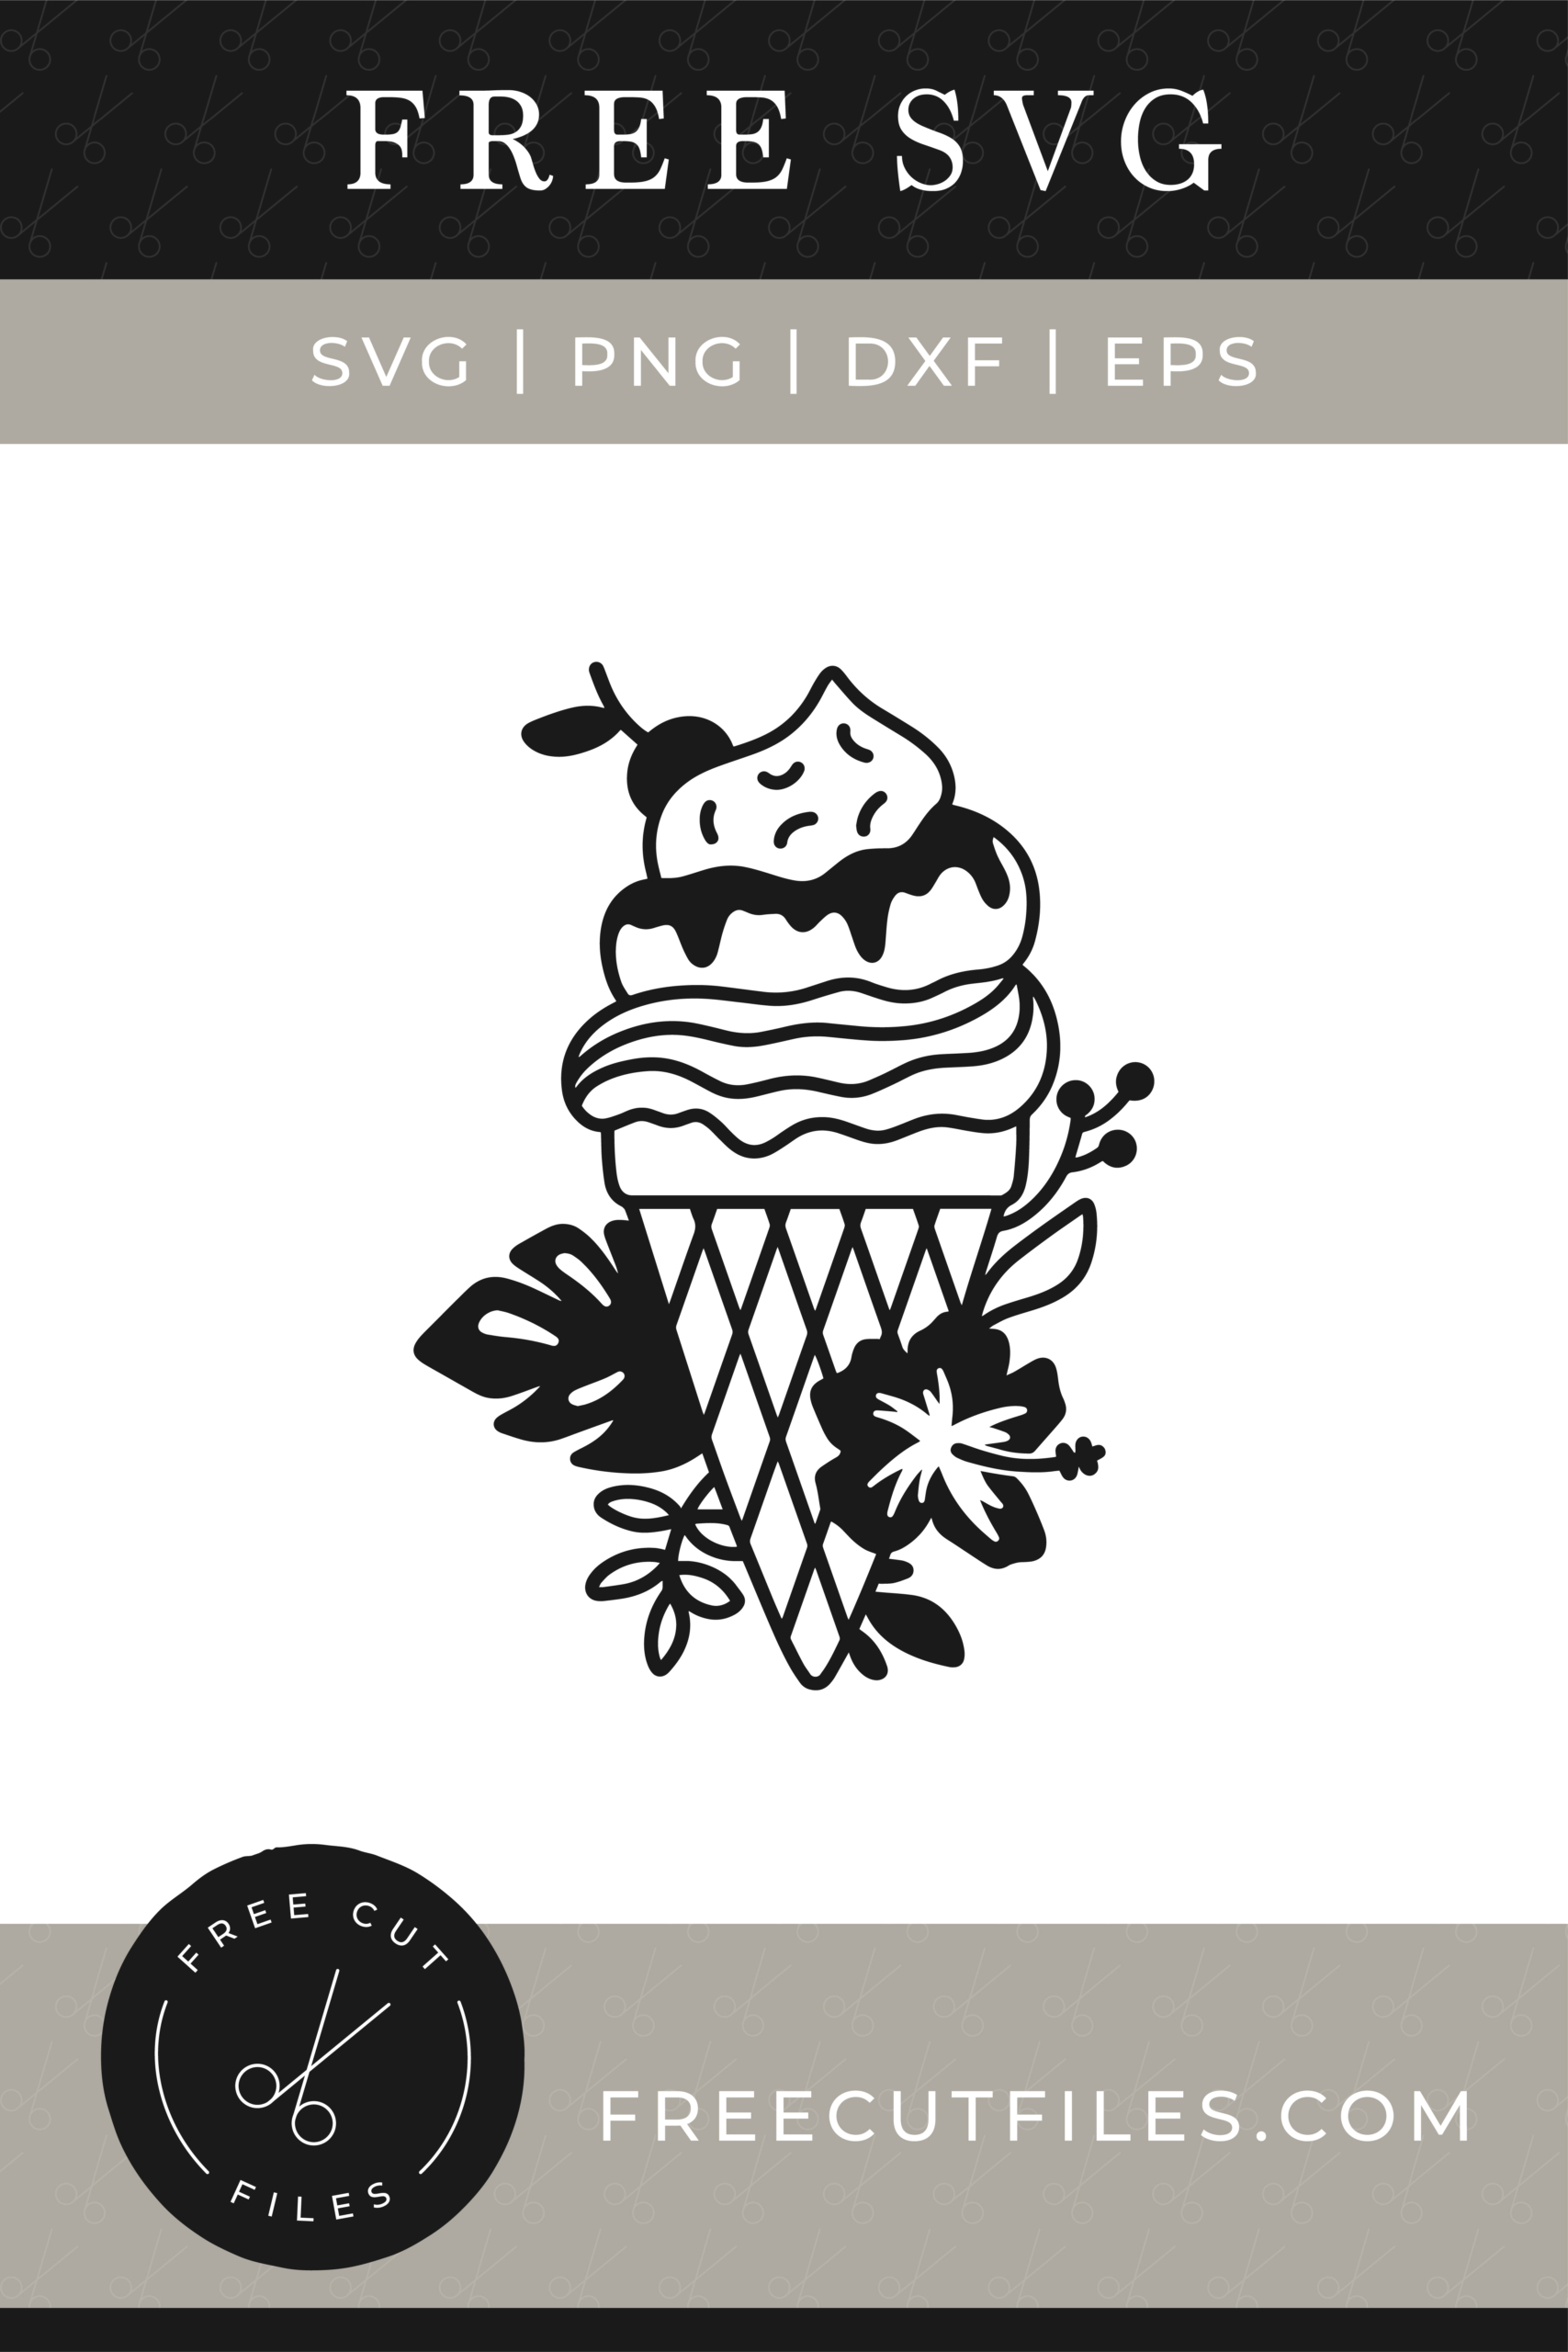 Free Outline Ice cream with flowers SVG